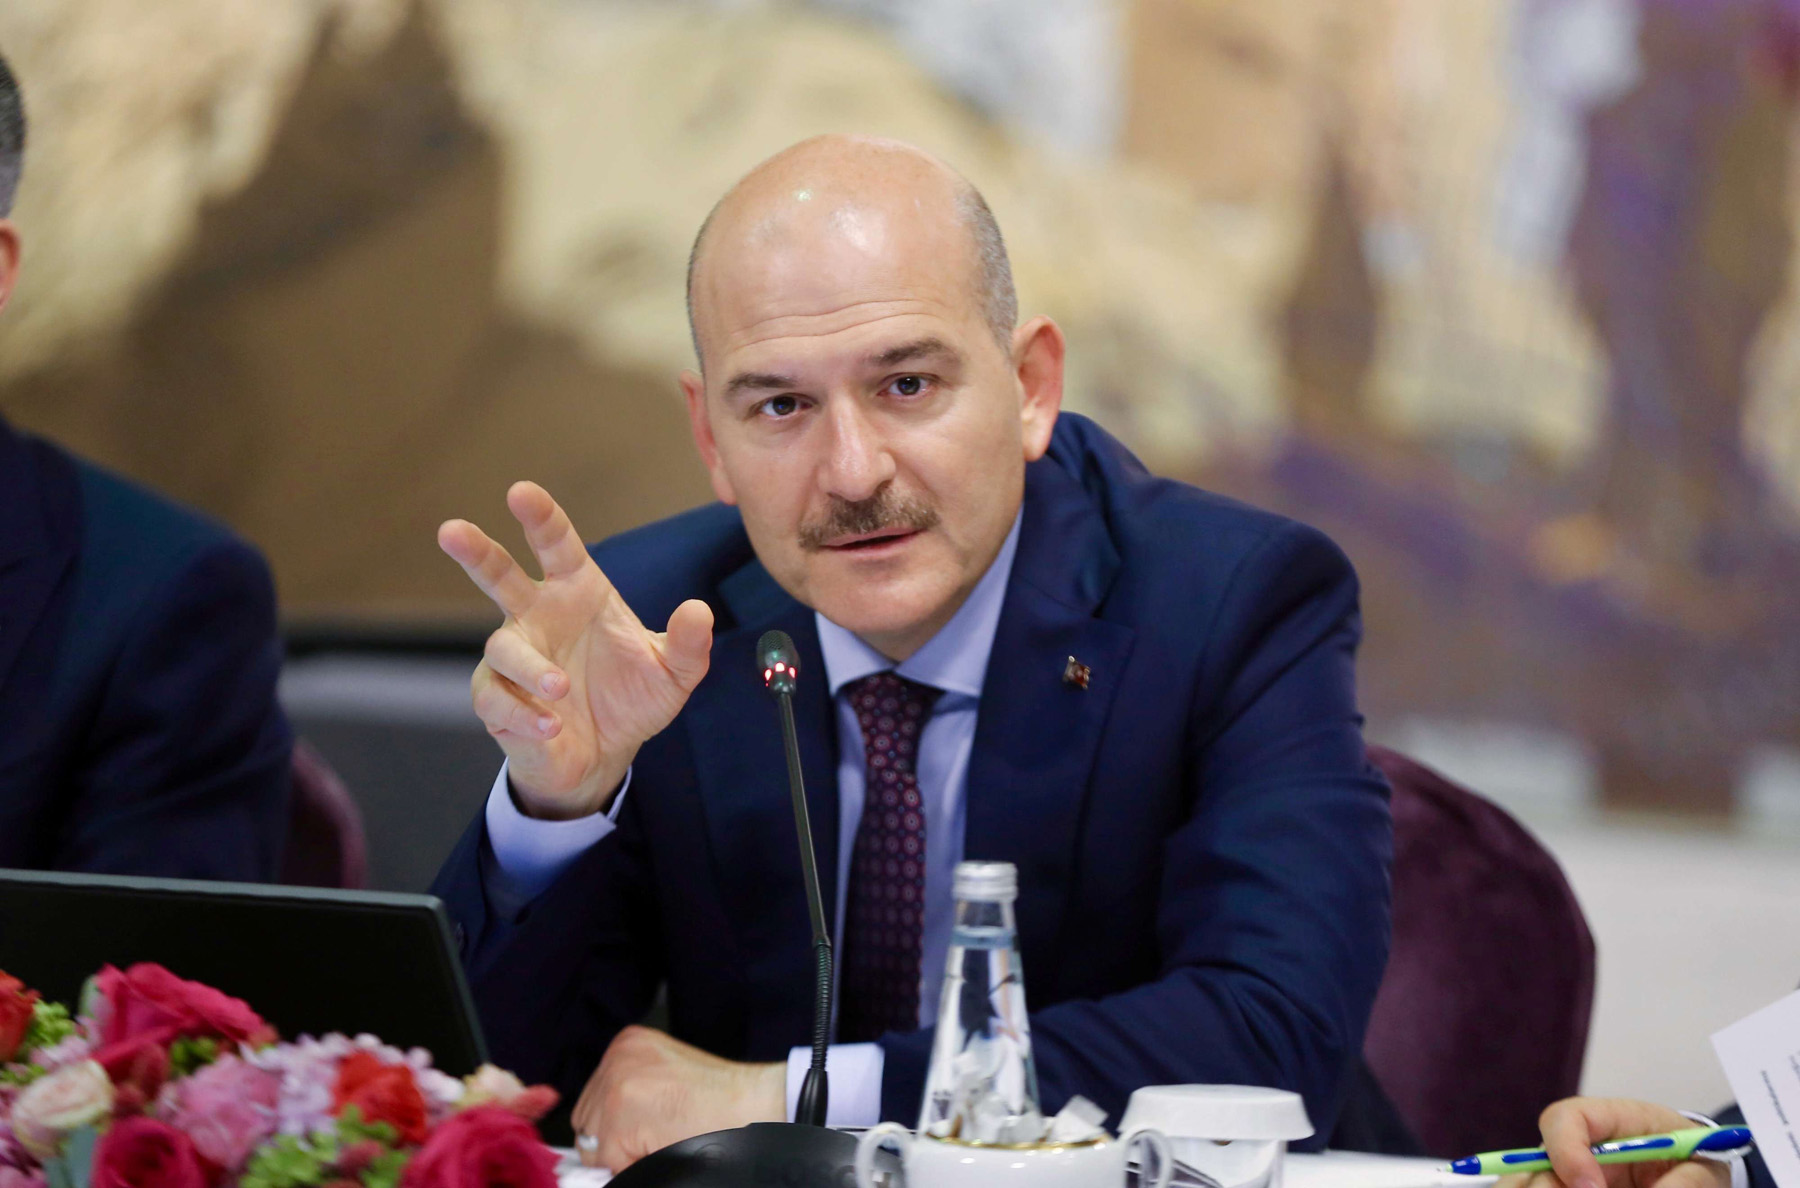 A file picture of Turkish Interior Minister Suleyman Soylu as he speaks during a news conference in Istanbul. (Reuters)